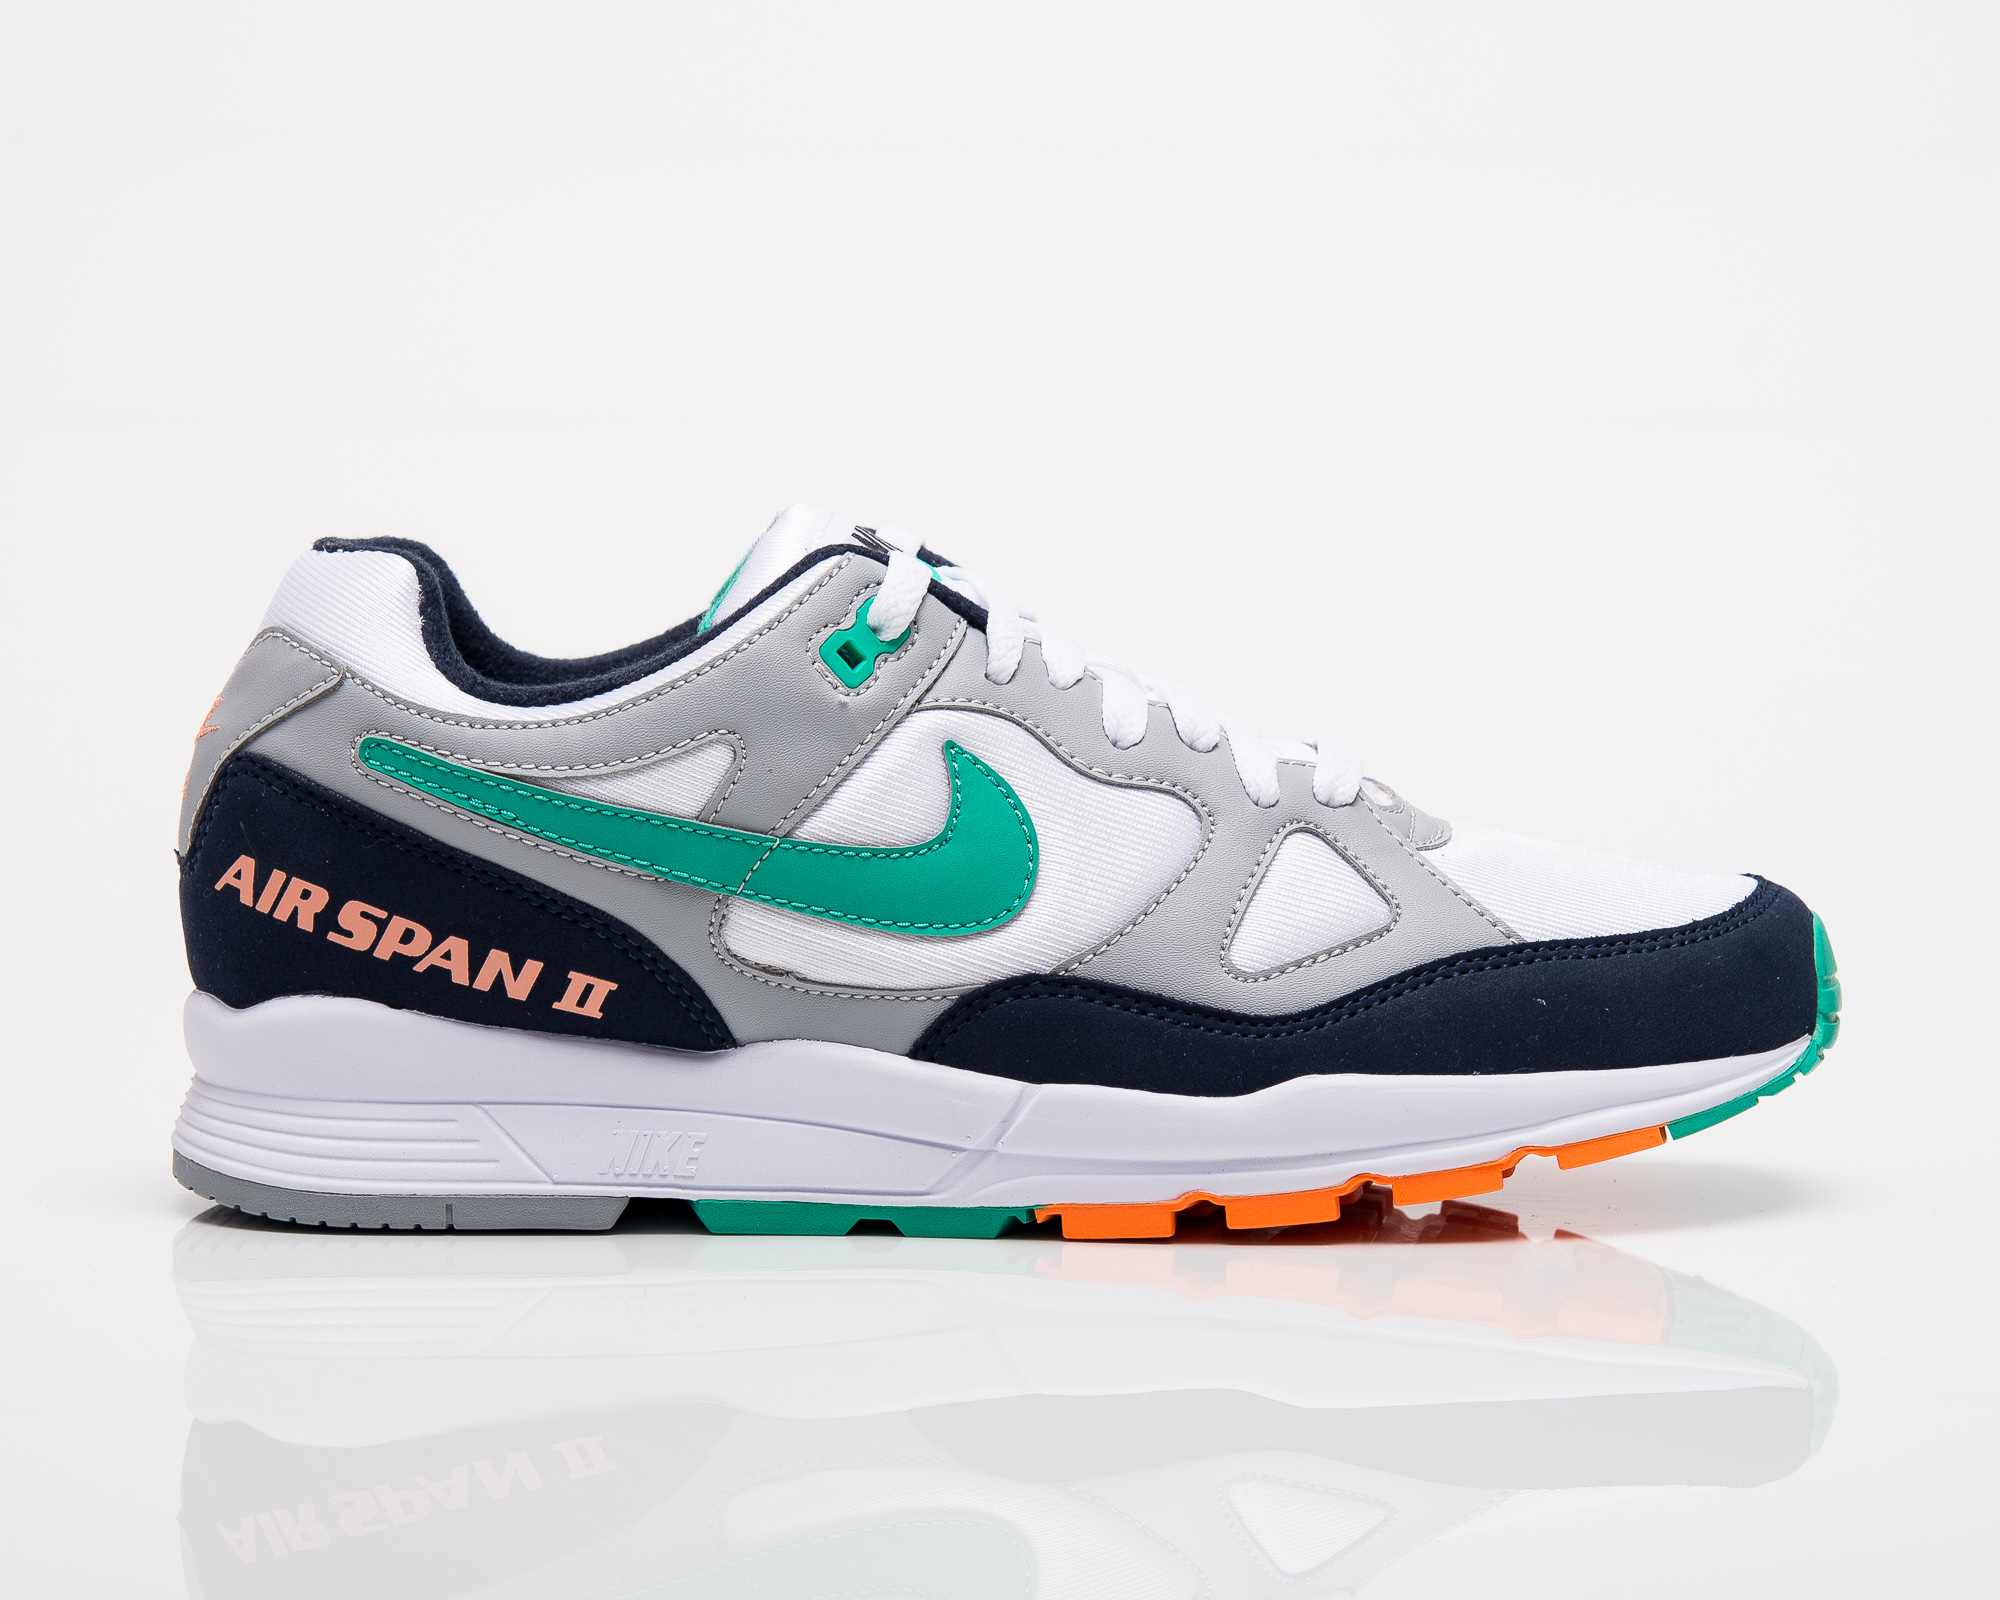 7cad0ce6df Nike Air Span II - Shoes Casual - Sporting goods | sil.lt